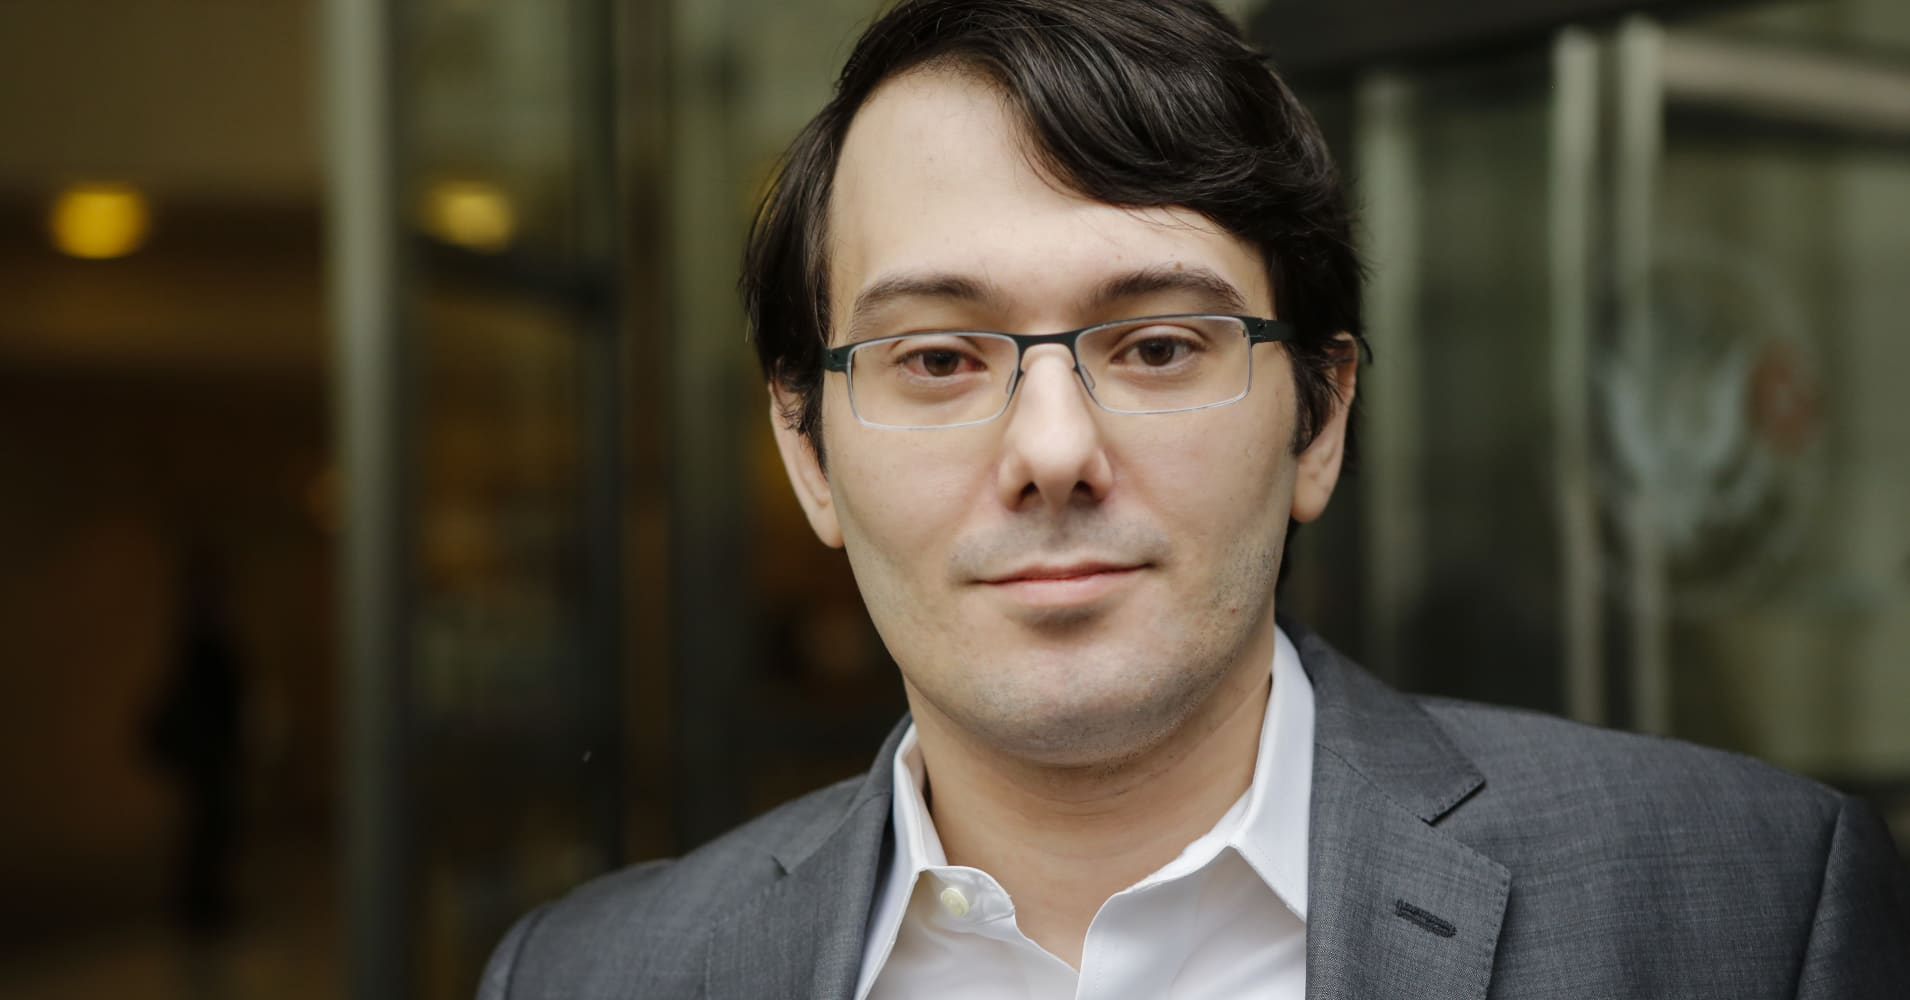 Bail stumper: Martin Shkreli gets permission to travel outside of NY for speaking gigs